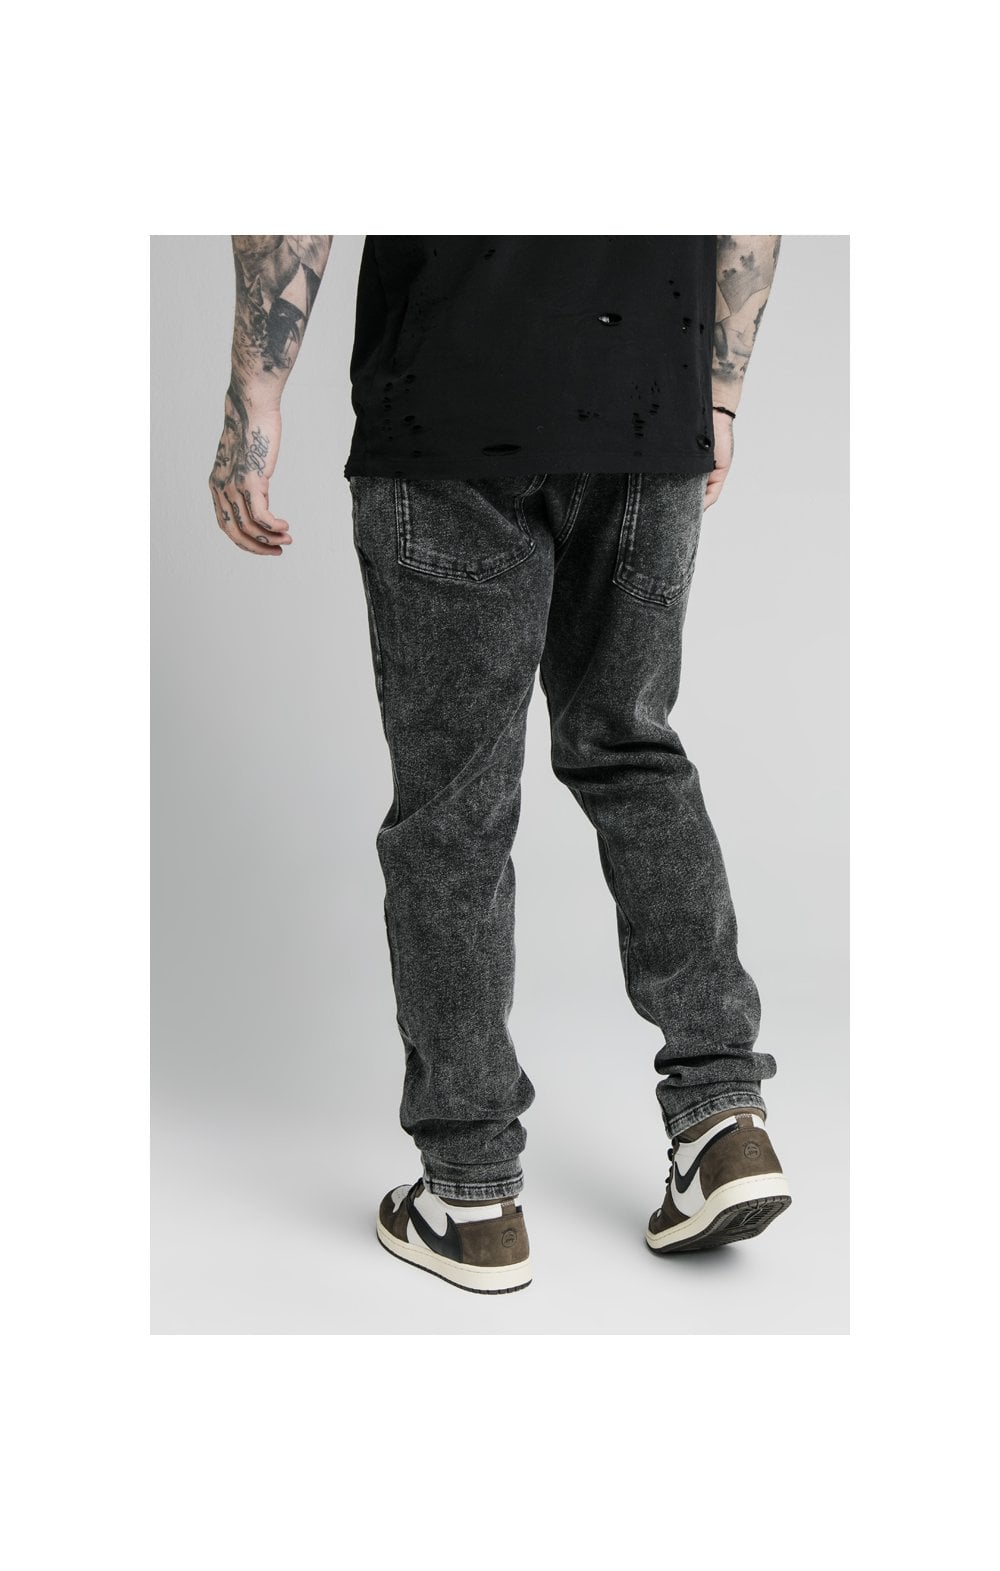 SikSilk Raw Loose Fit Denims - Acid Black (2)